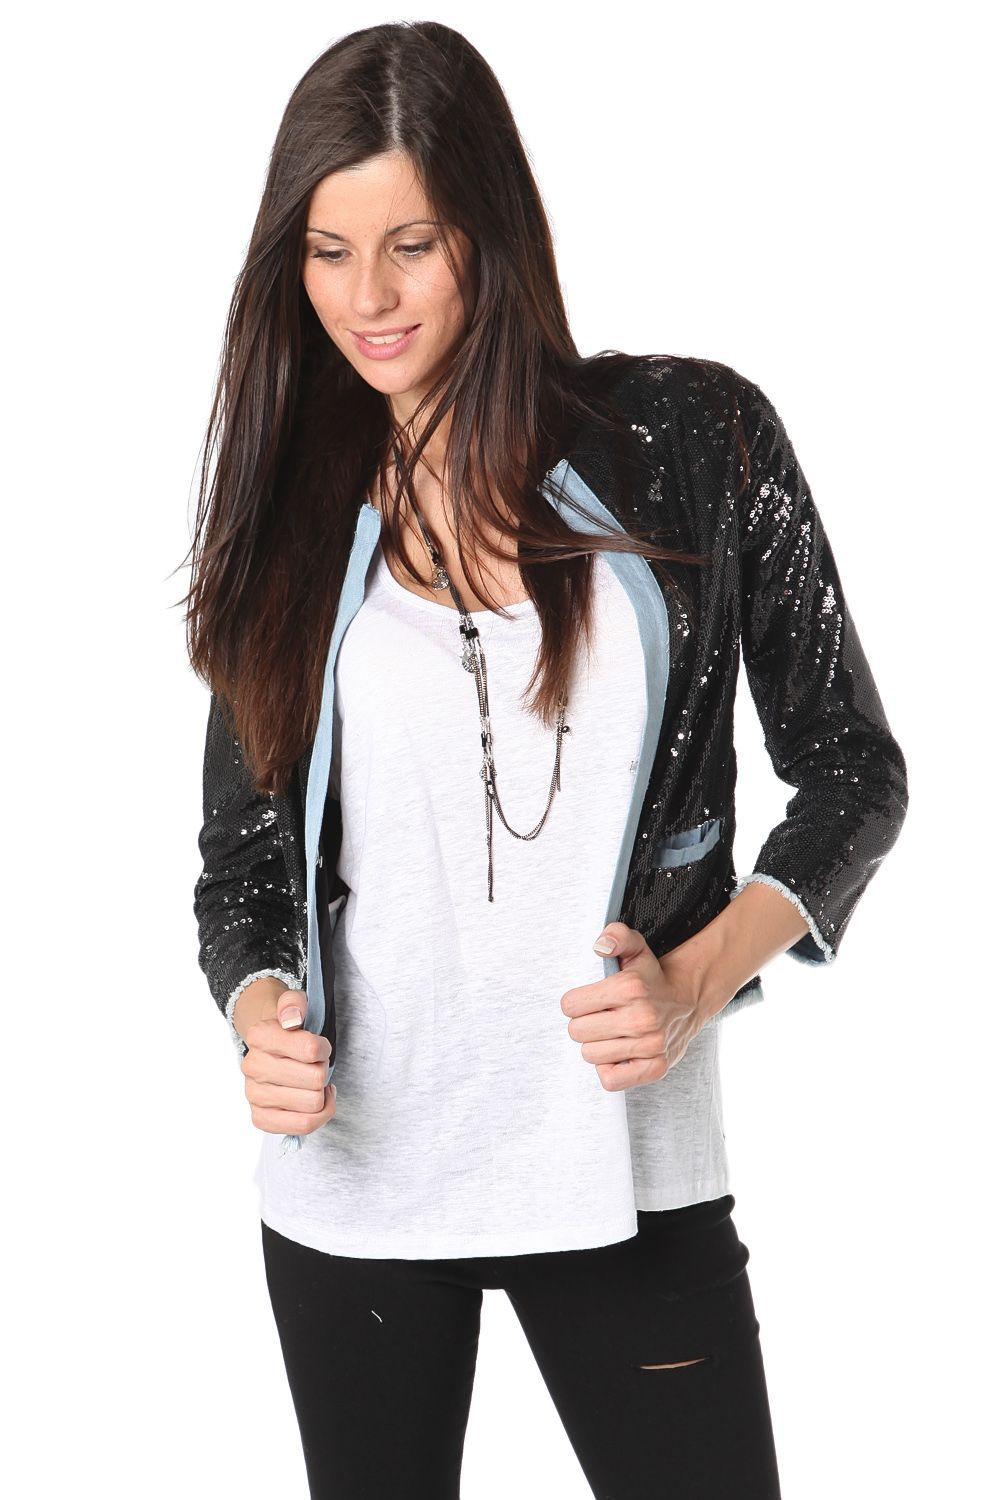 Denim crop jacket with sequin inserts - 49,90 € - https://q2shop.com/